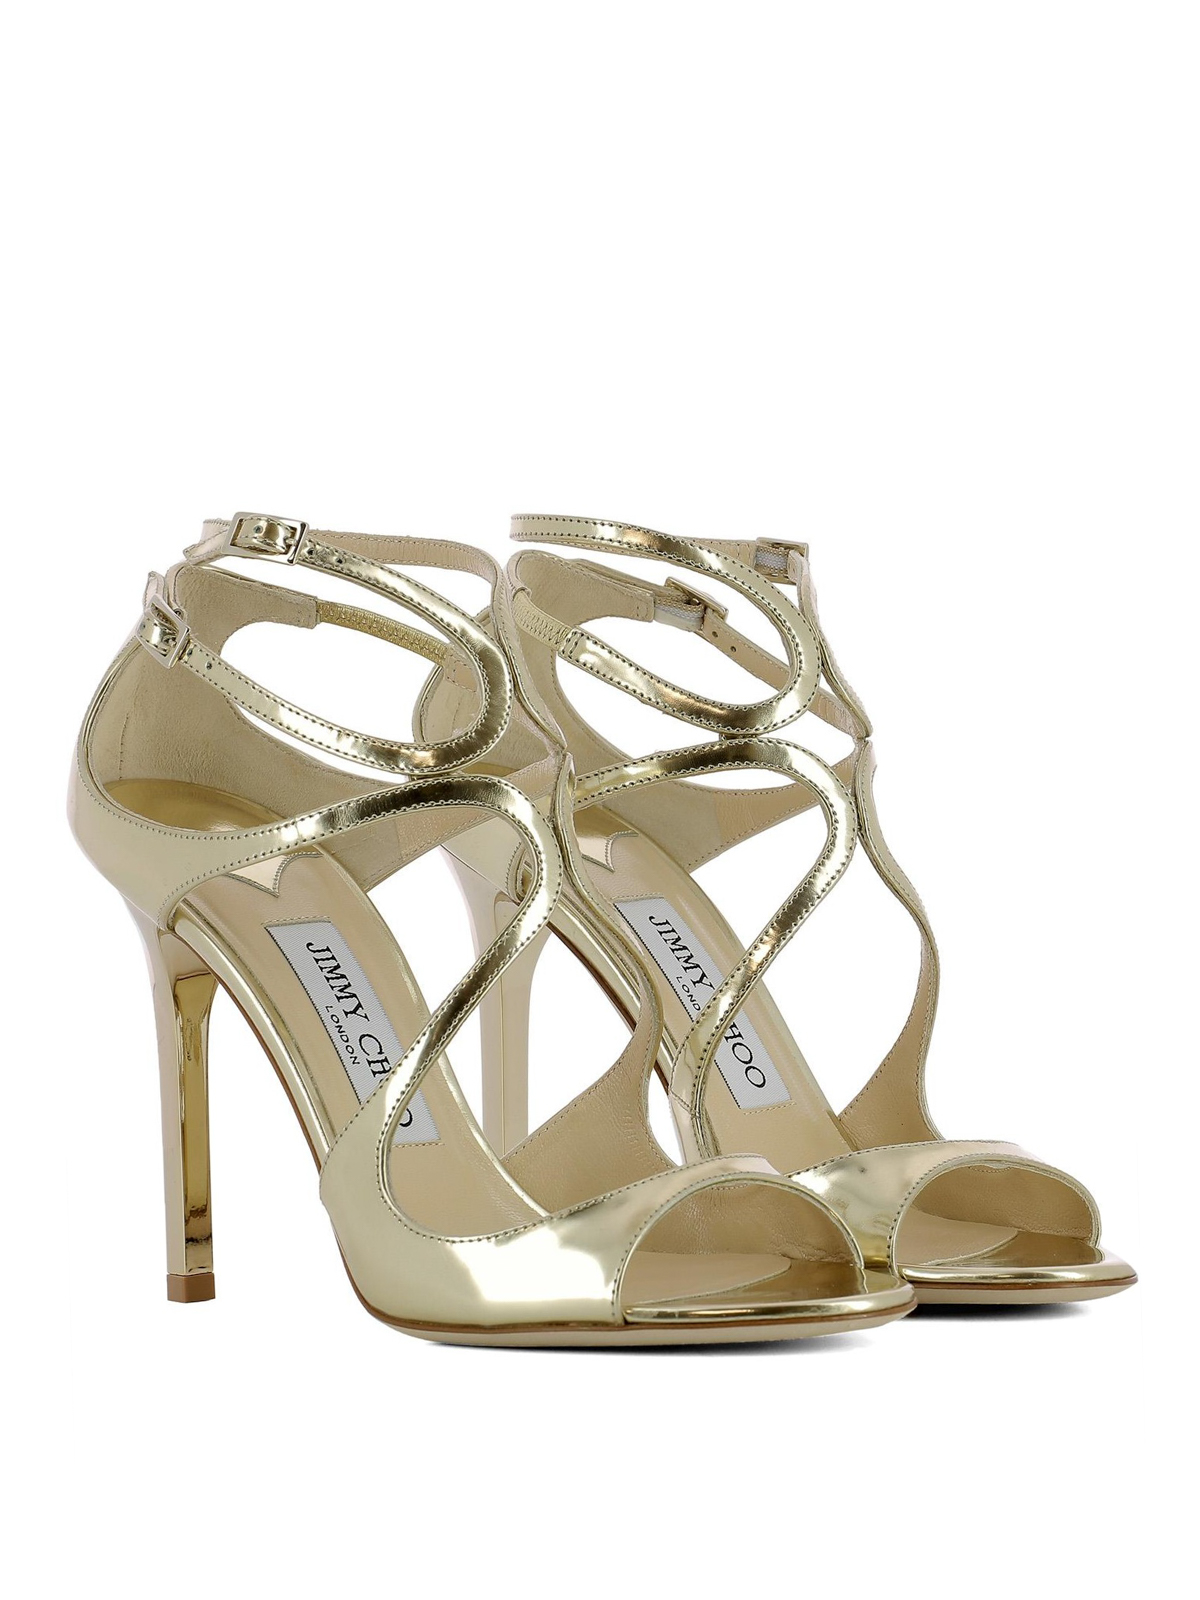 aed6e53fdbe6 Jimmy Choo - Lang leather sandals - sandals - LANGMLE GOLD